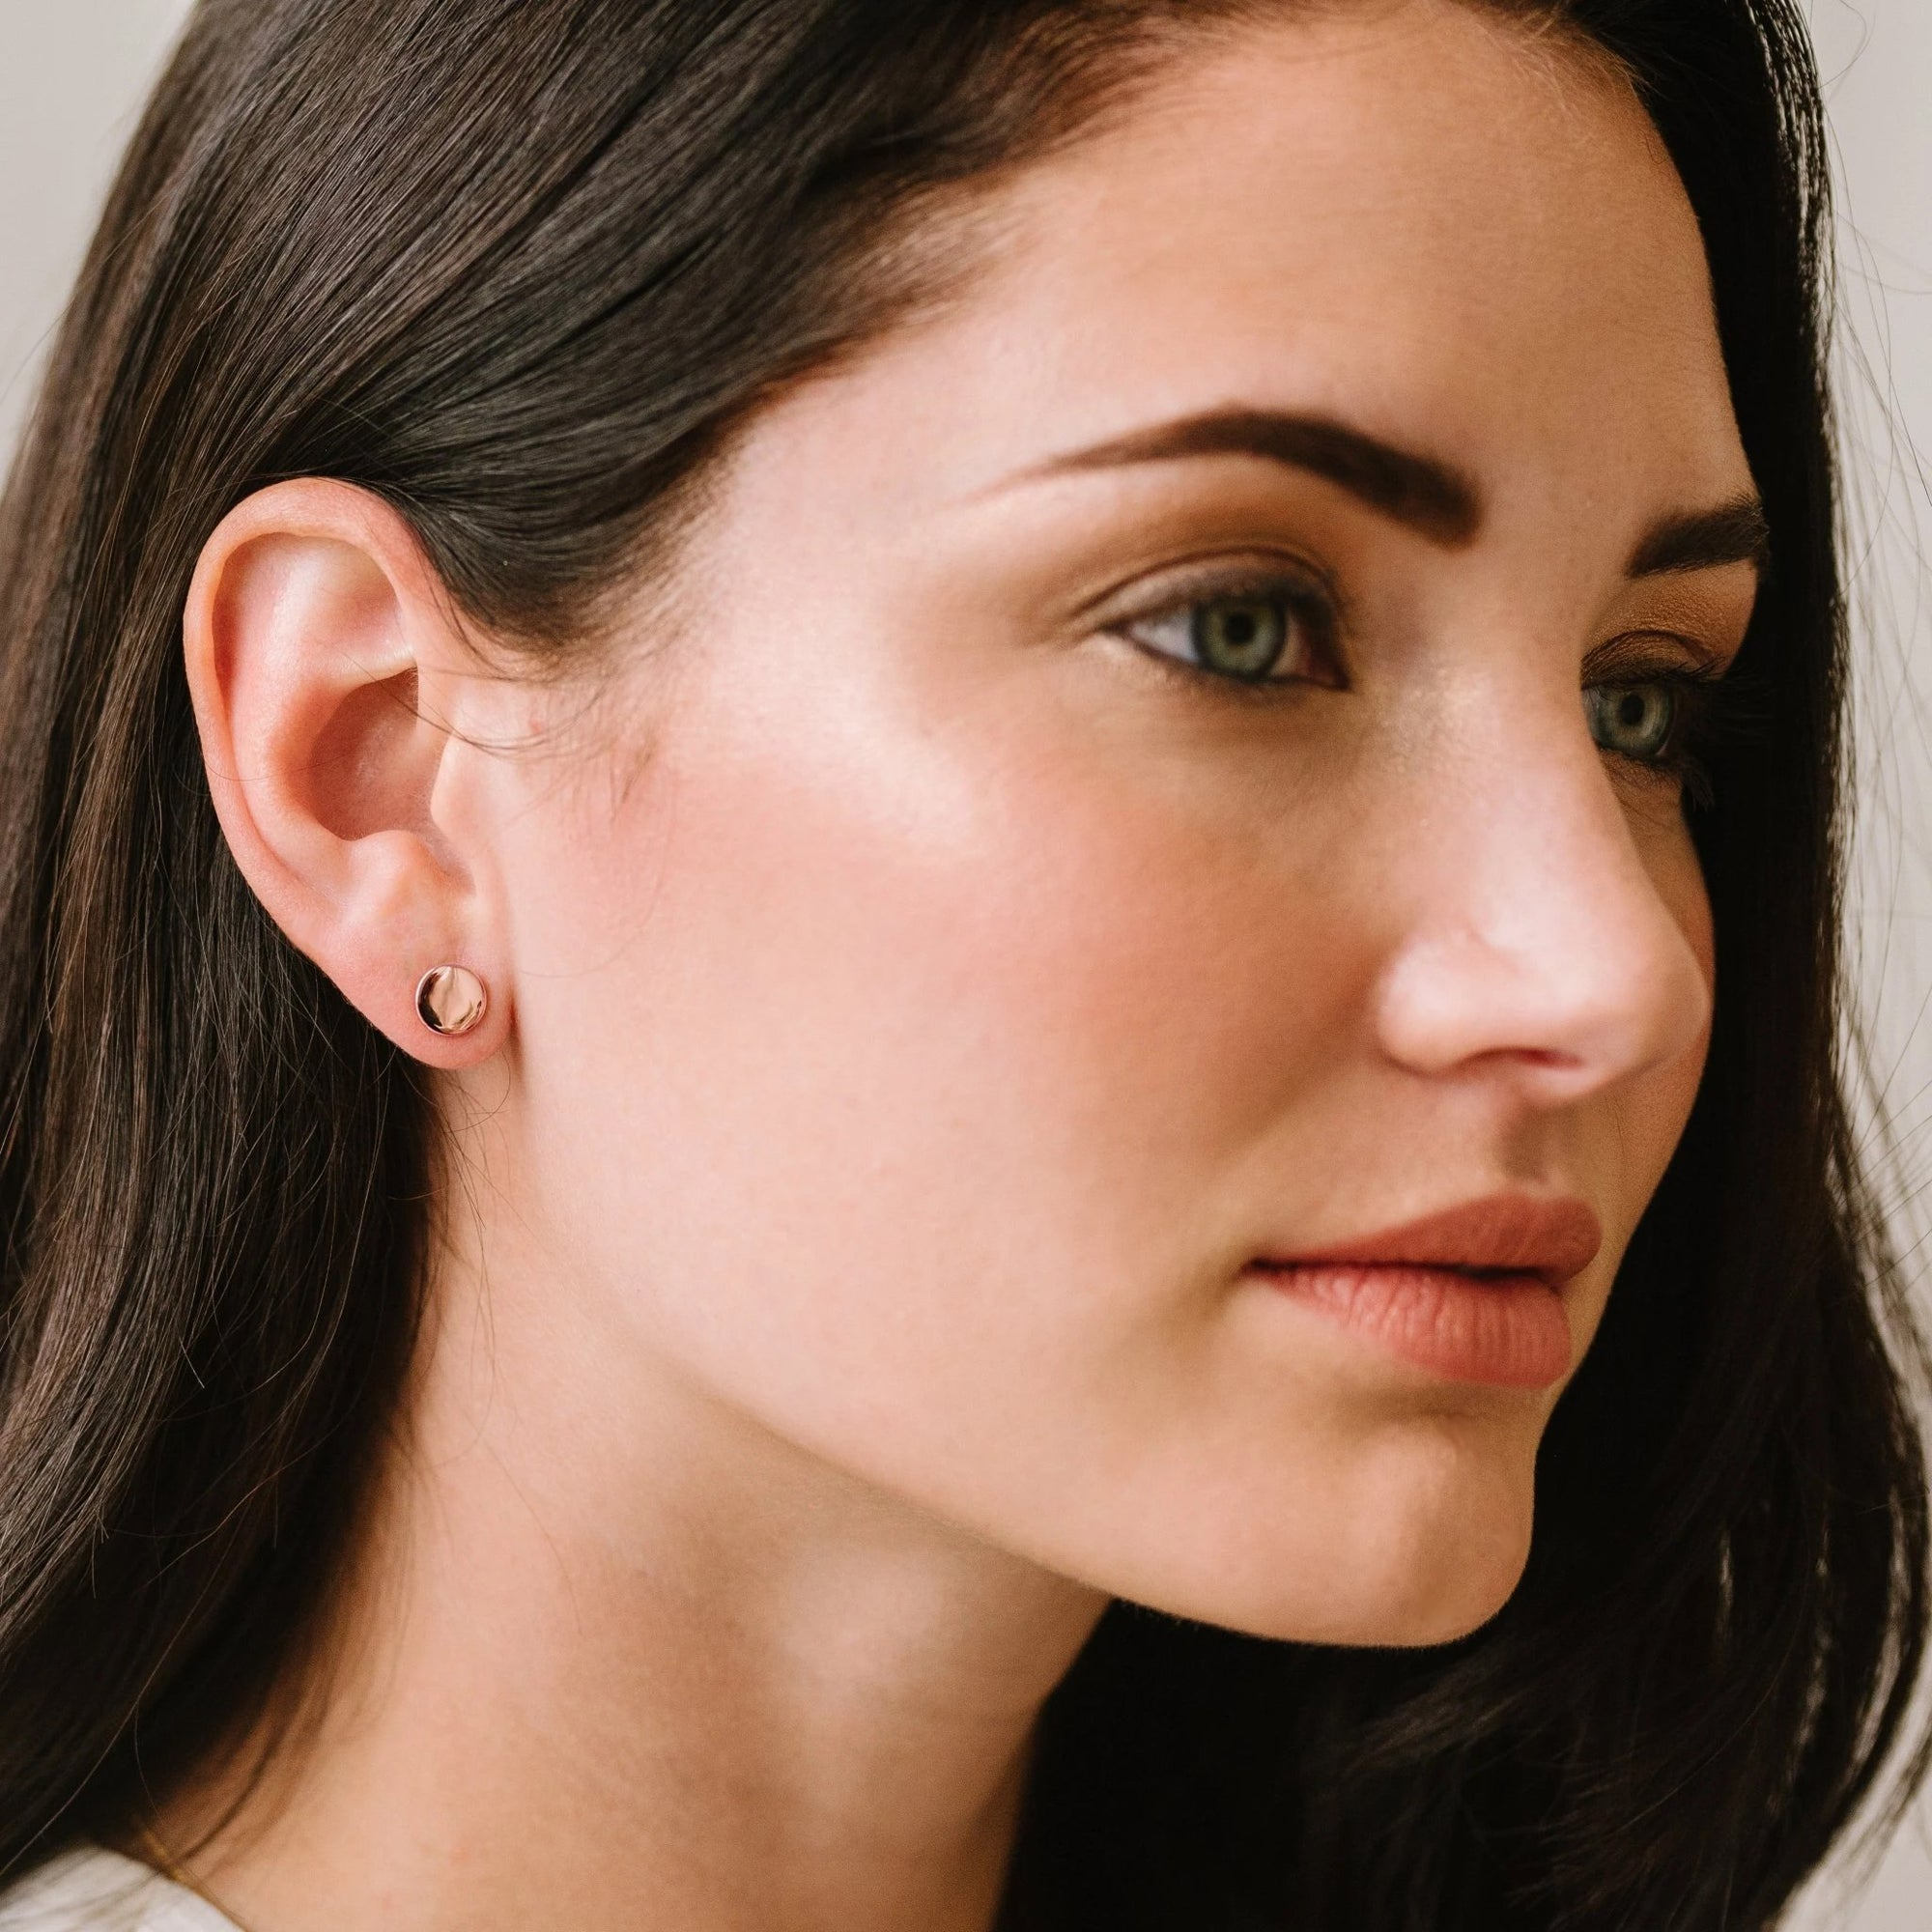 MINI POISE CIRCLE STUDS - ROSE GOLD - SO PRETTY CARA COTTER